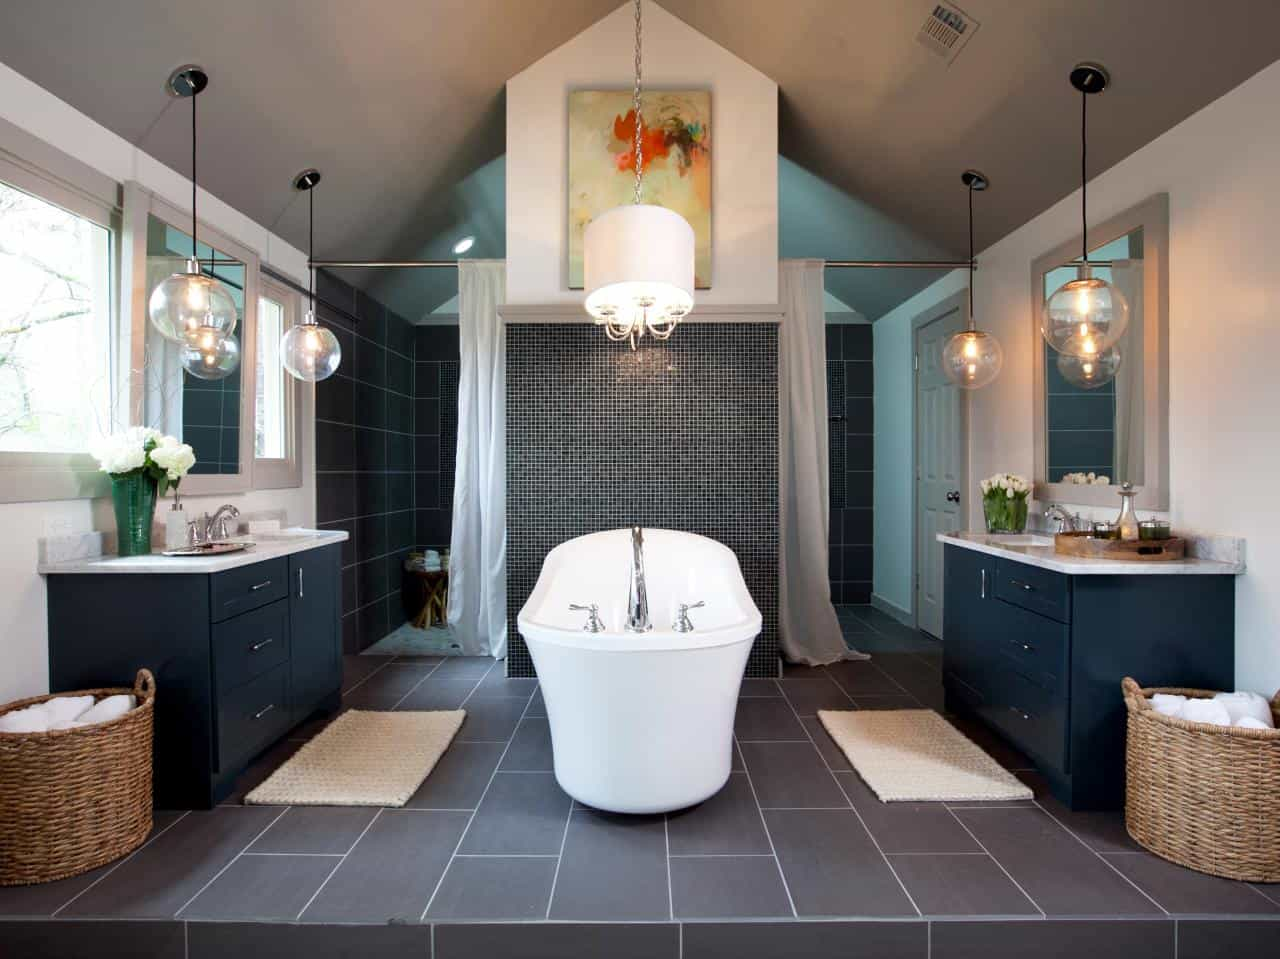 Sensational 20 Soaking Tubs To Add Extra Luxury To Your Master Bathroom Beutiful Home Inspiration Truamahrainfo